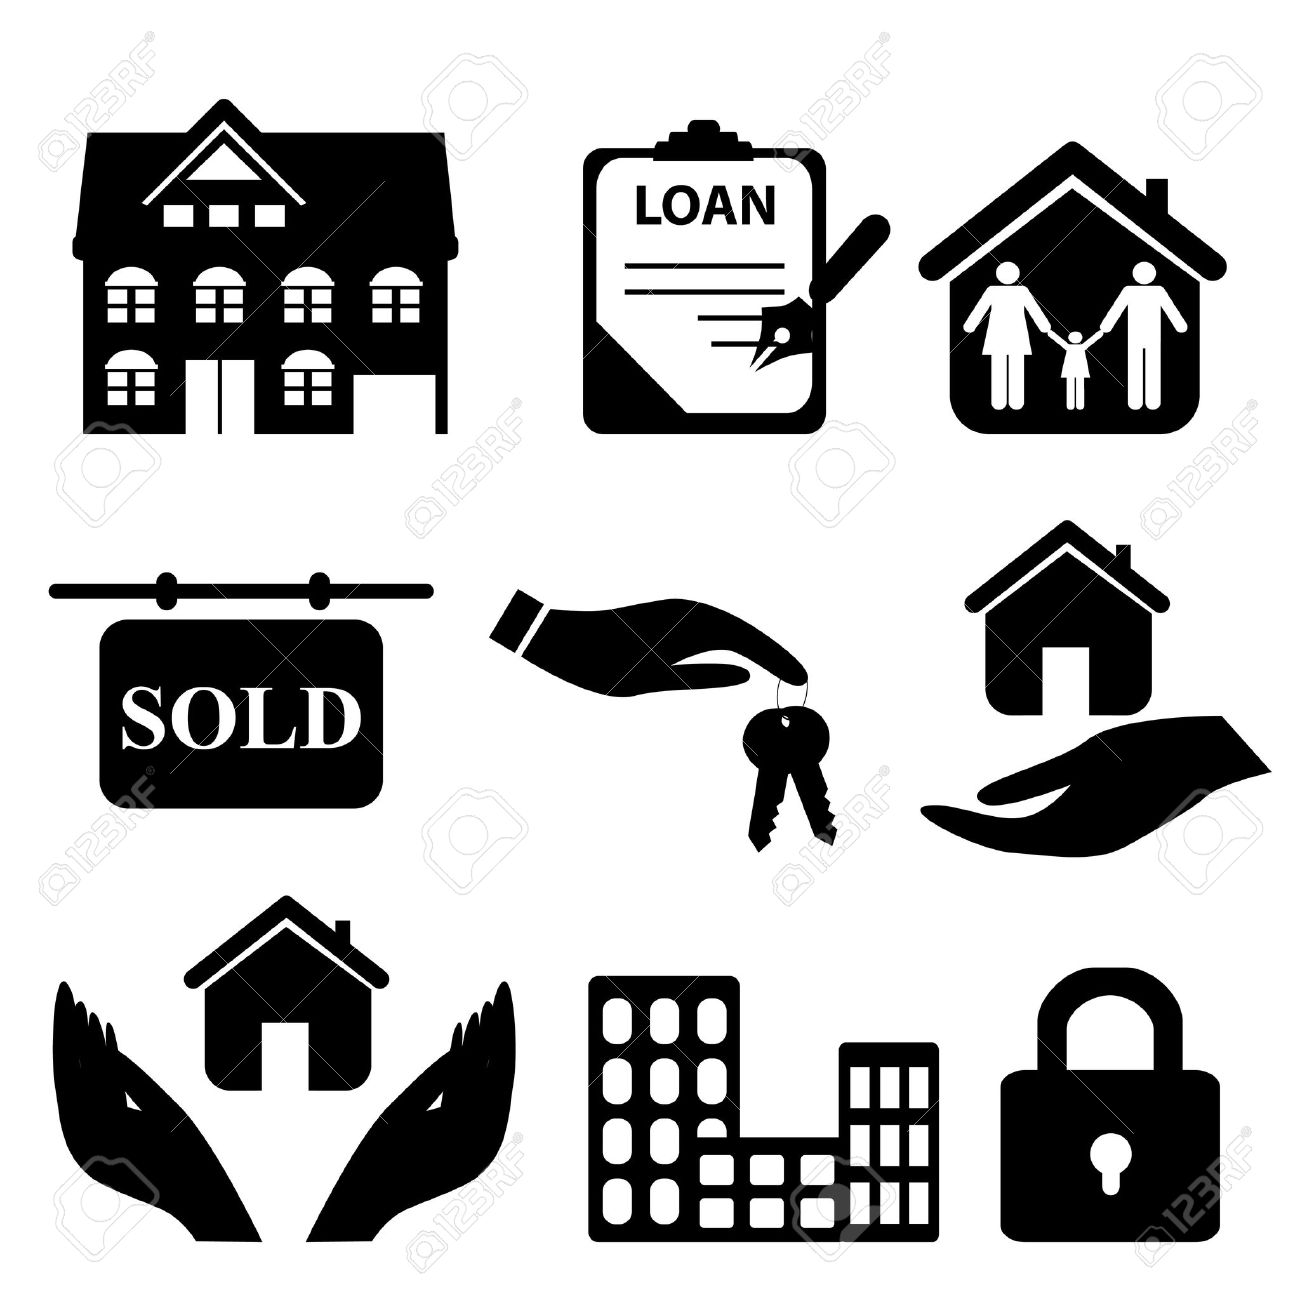 Real estate symbols icon set royalty free cliparts vectors and real estate symbols icon set stock vector 8386932 biocorpaavc Image collections